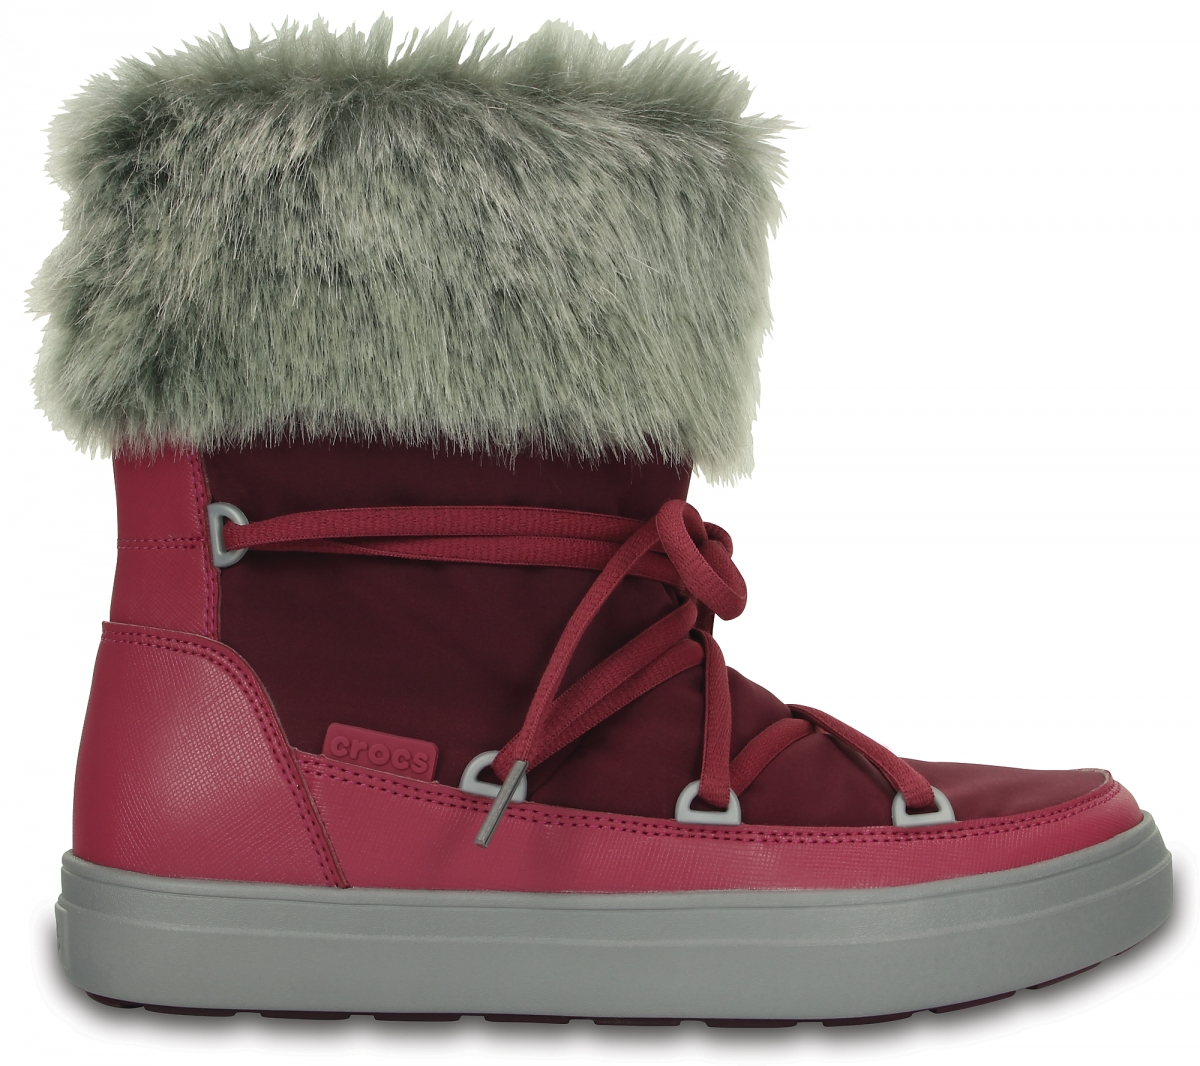 Crocs LodgePoint Lace Boot Nylon - Pomegranate, W8 (38-39)